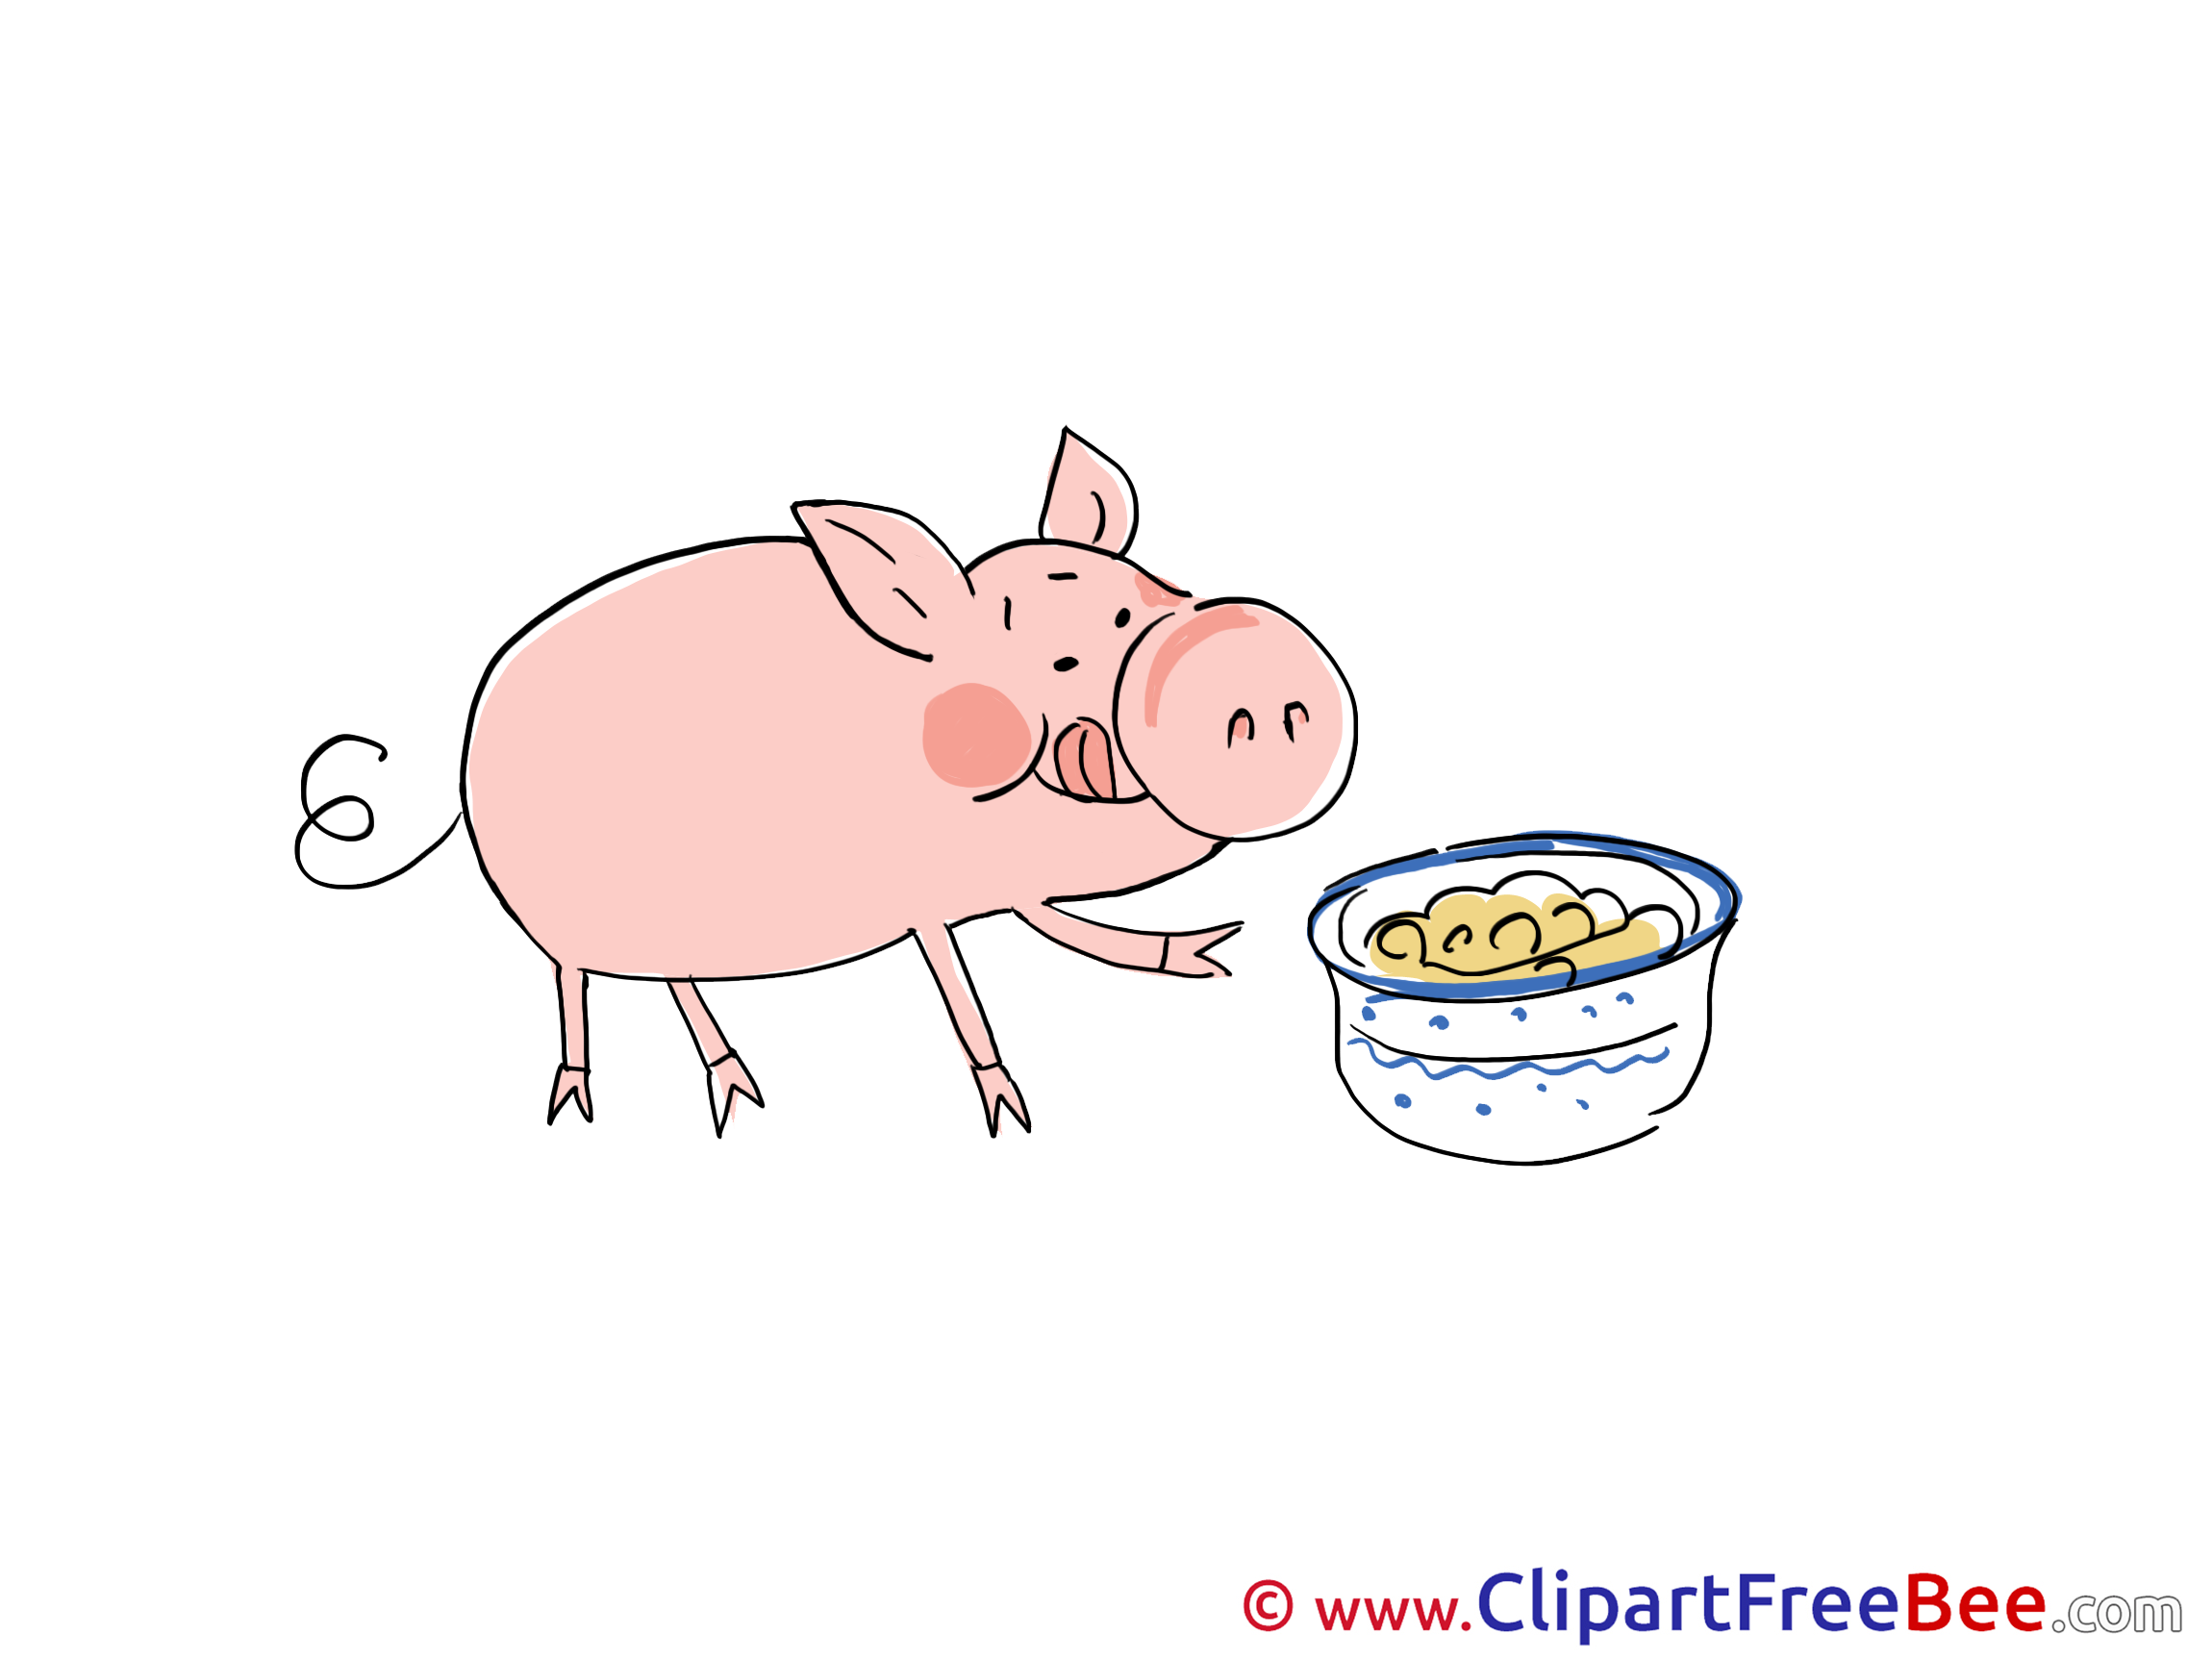 Food Pig Pics free Illustration